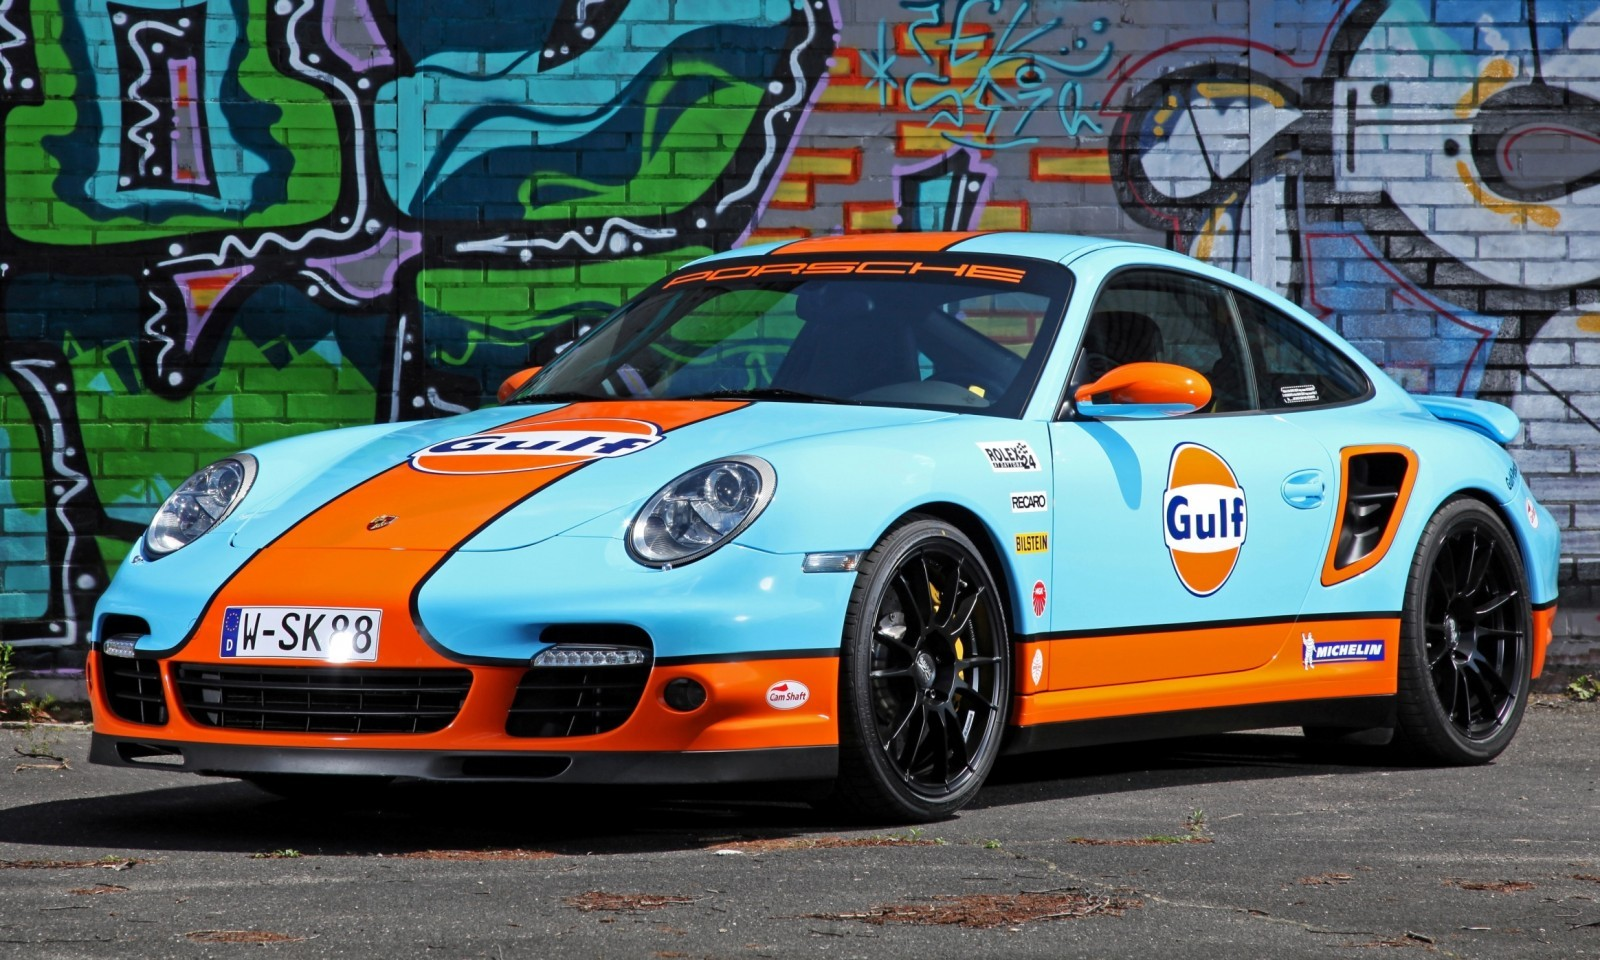 Gulf Racing Livery by CAM SHAFT for the Porsche 911 Turbo 10